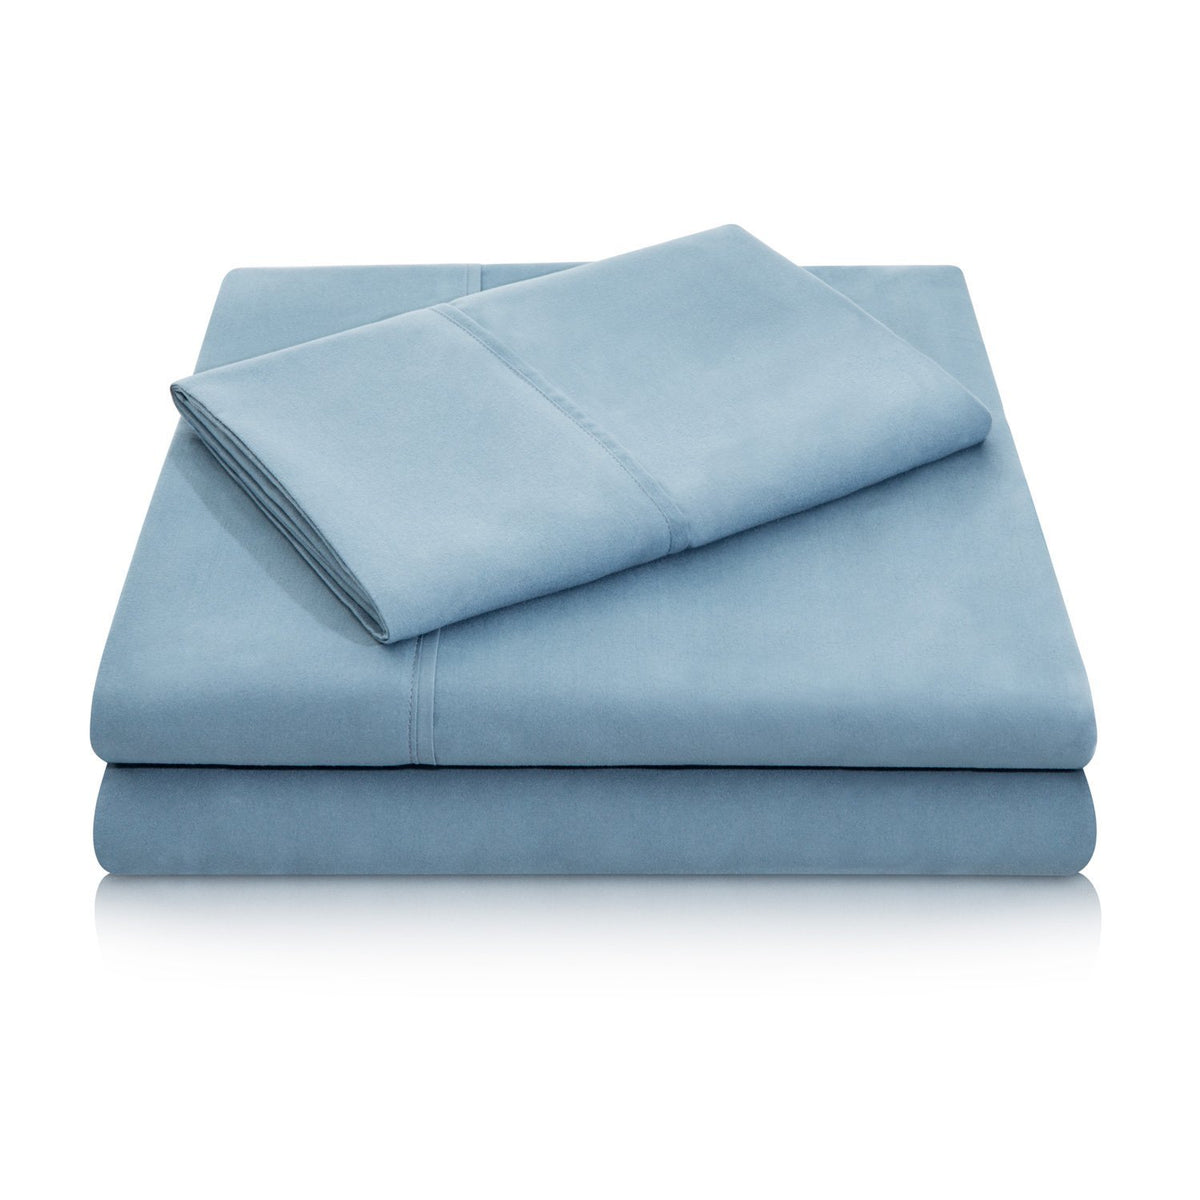 WOVEN Brushed Microfiber Sheet Set Sheet Set Malouf Twin Pacific